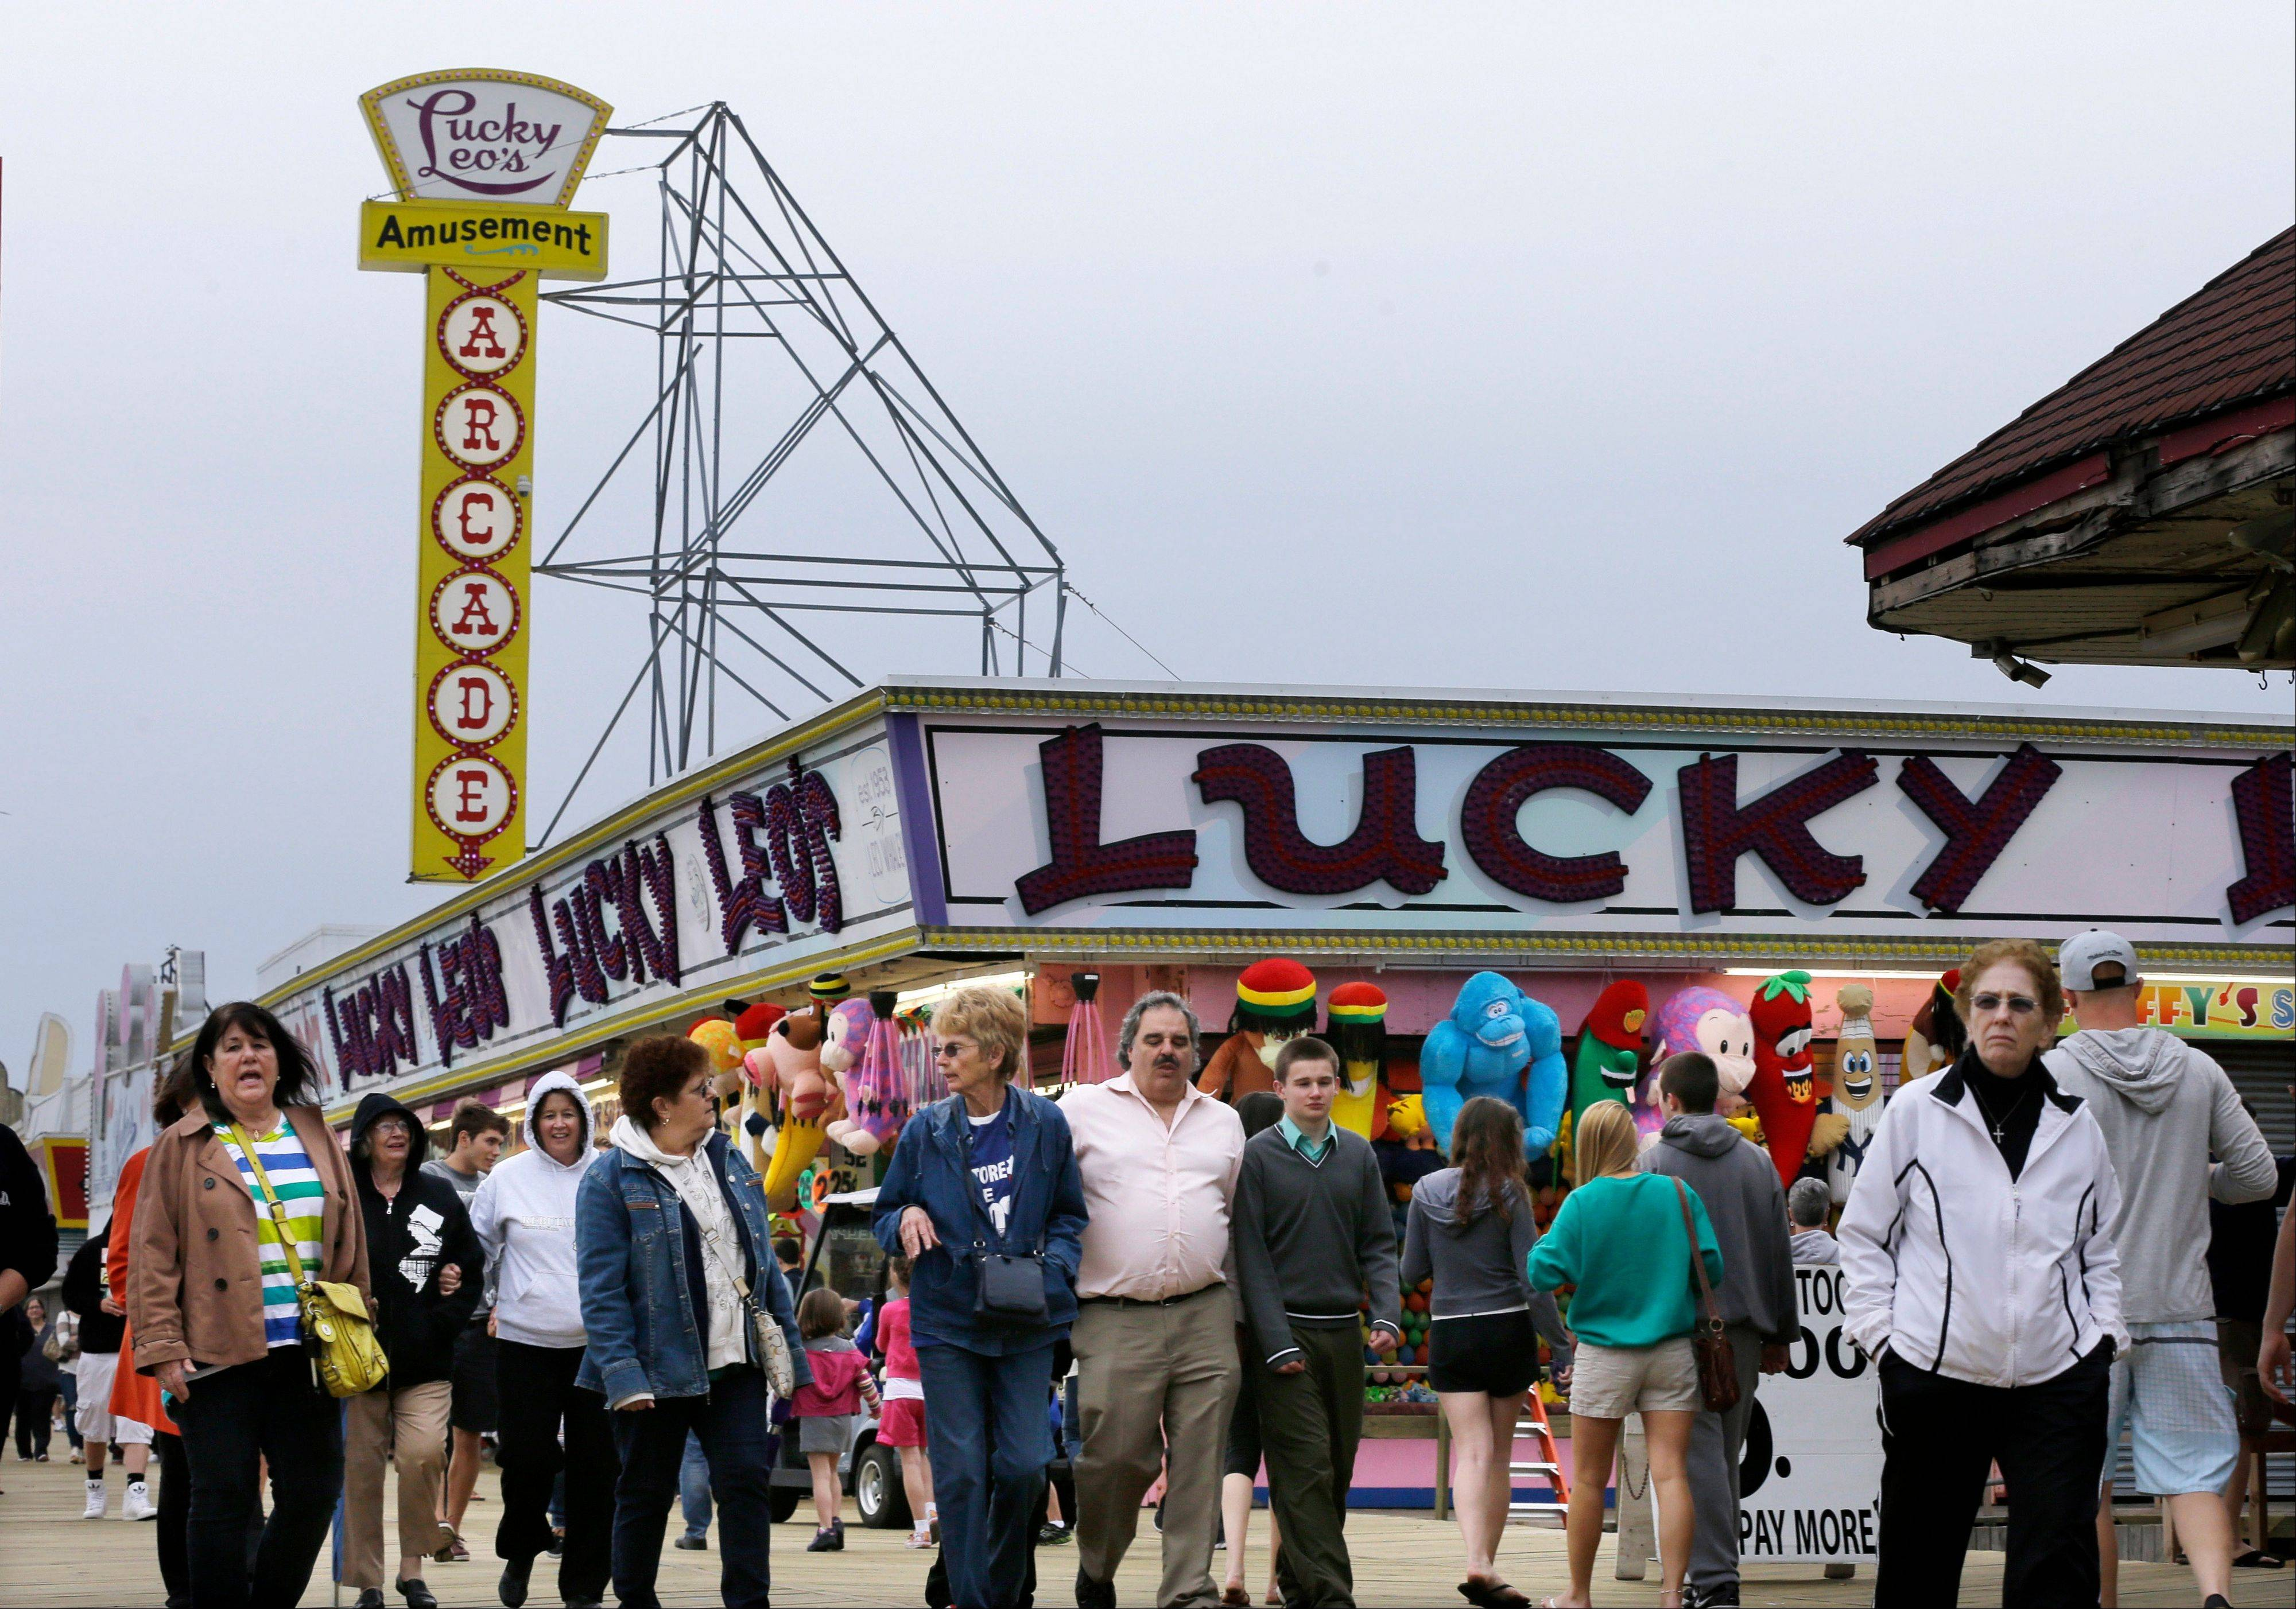 People walk past open attractions along the newly rebuilt boardwalk in Seaside Heights, N.J., Saturday, May 18, 2013. Visitors to the Jersey shore this Memproal Day weekend will find many of their favorite beaches and boardwalks ready for summer, thanks to a massive rebuilding effort after Superstorm Sandy.